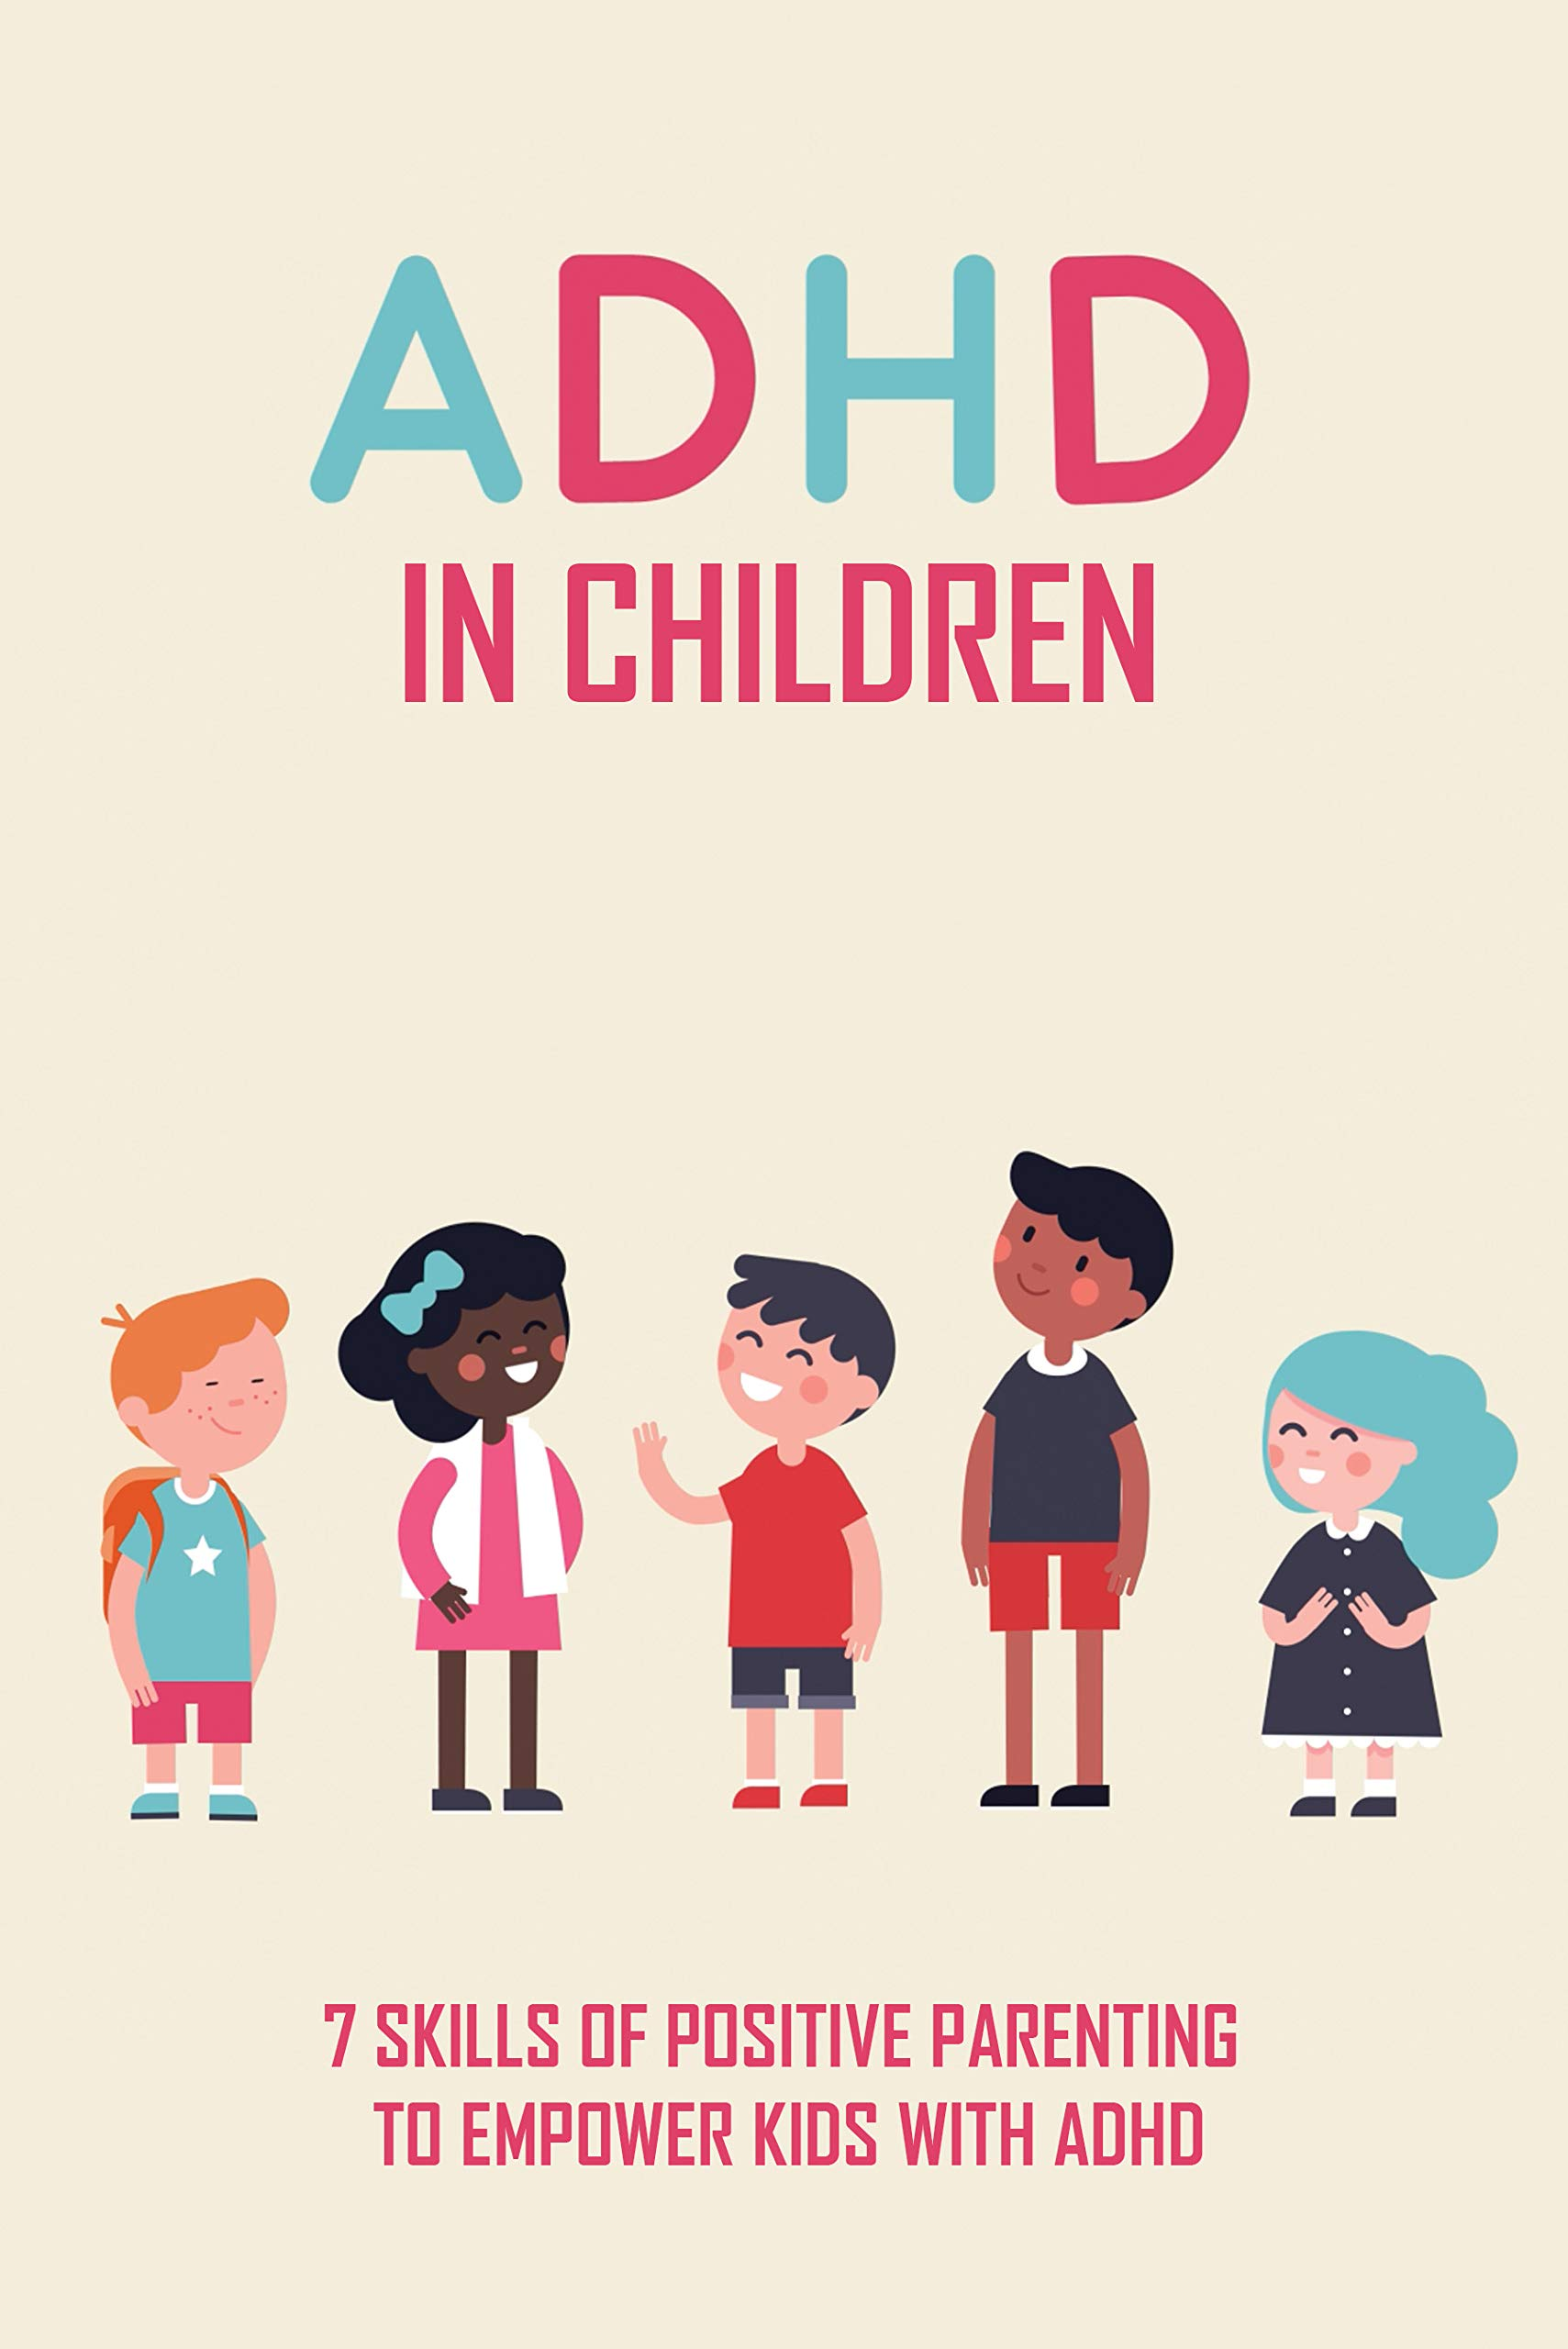 ADHD in Children: 7 Skills Of Positive Parenting To Empower Kids With ADHD: How Can I Help My Child With Adhd